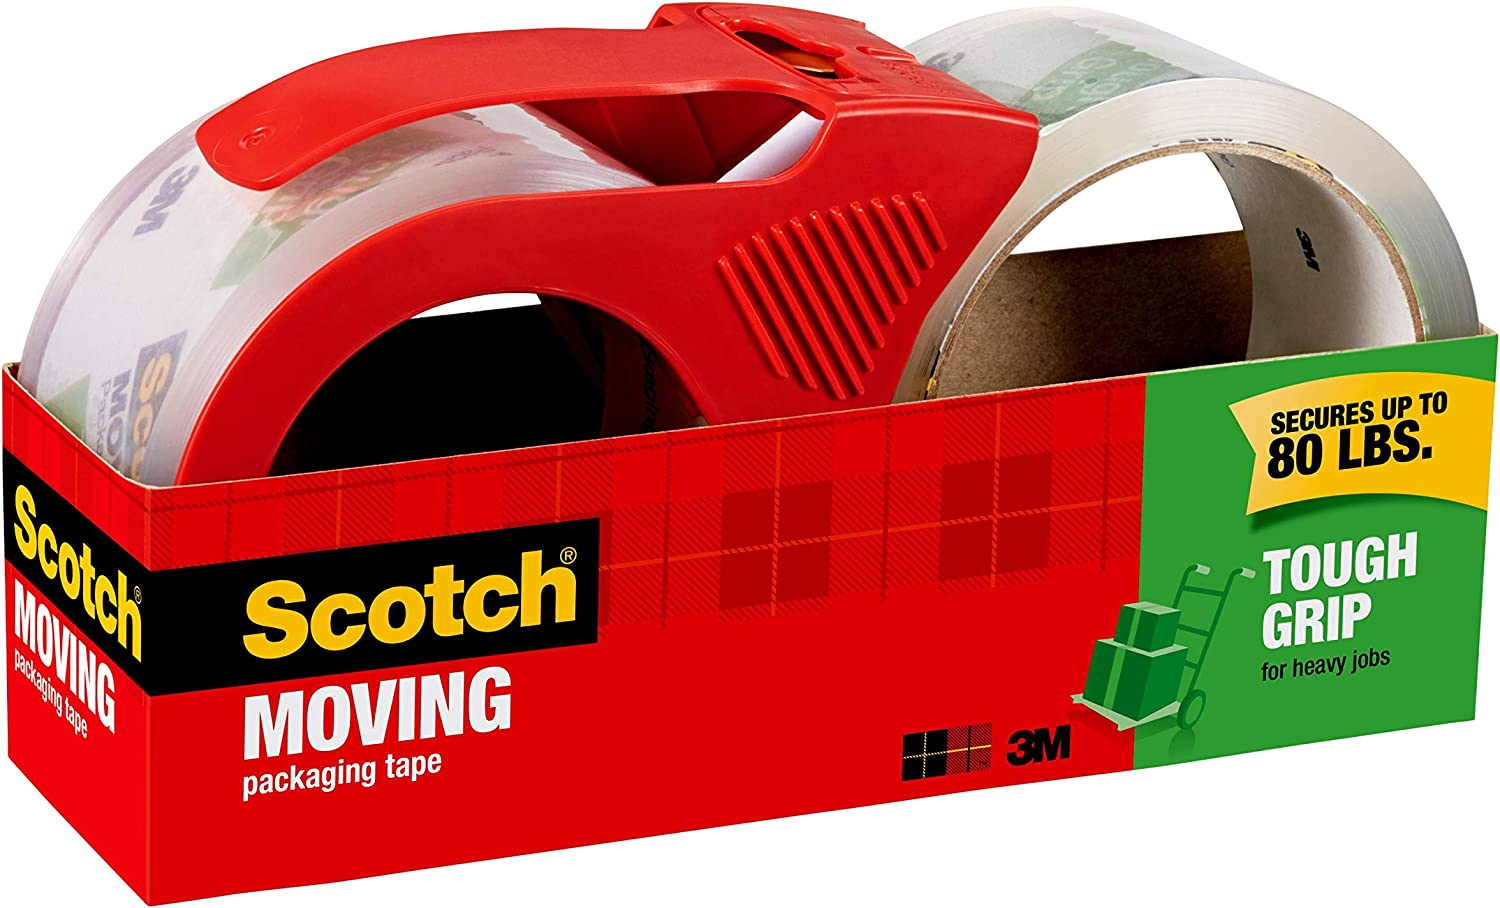 Scotch Tough Grip Moving Packaging Tape, 1.88 in. x 54.6 yd., 1 Dispenser and 1 Refill Roll/Pack : Office Products